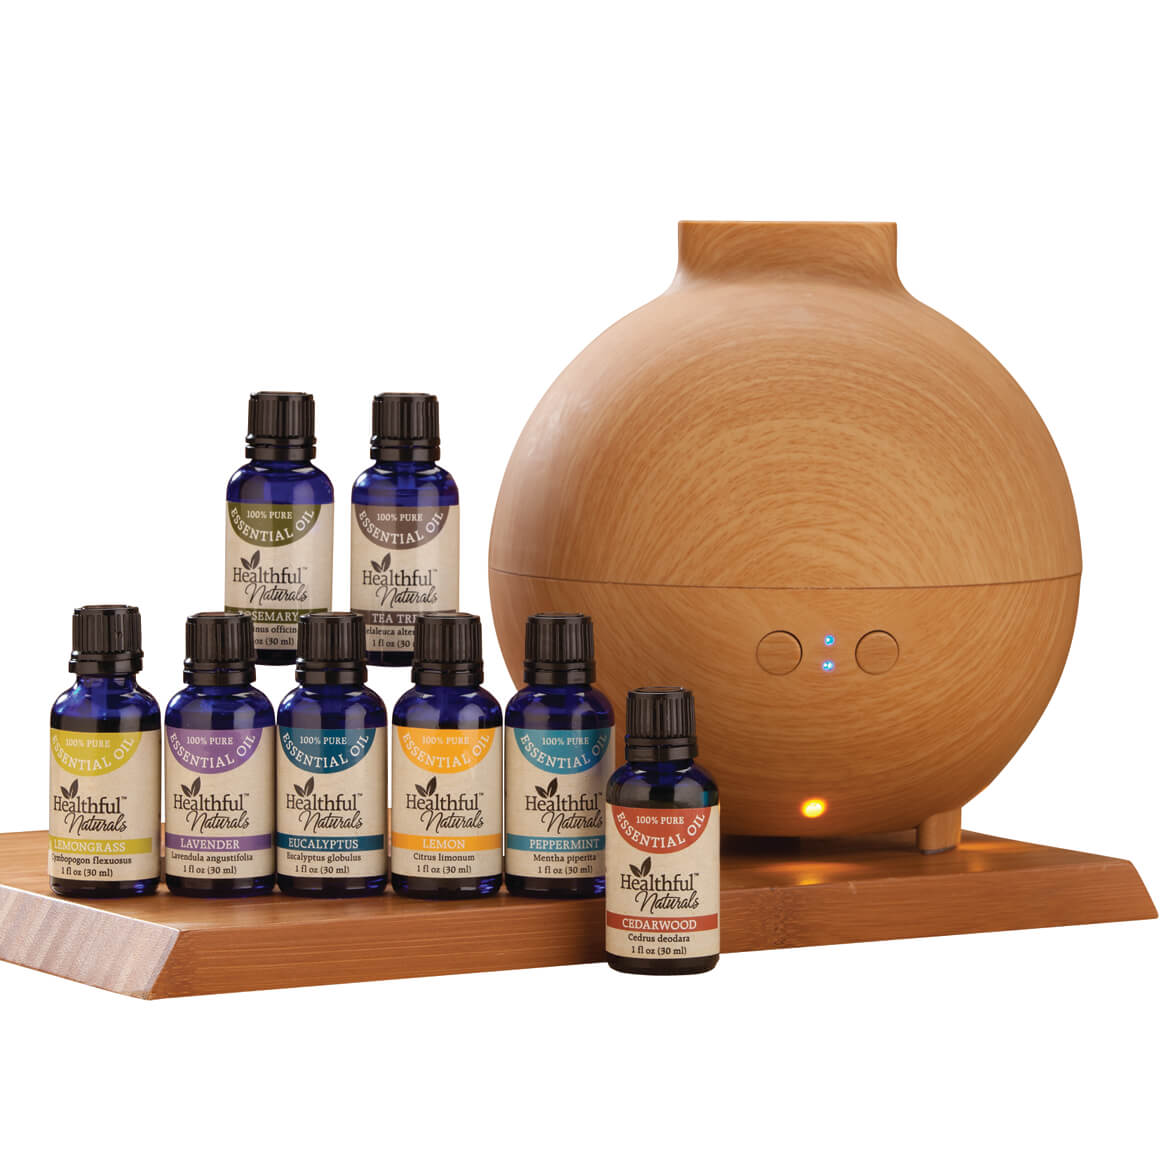 Healthful Naturals Deluxe Kit & 600 ml Diffuser